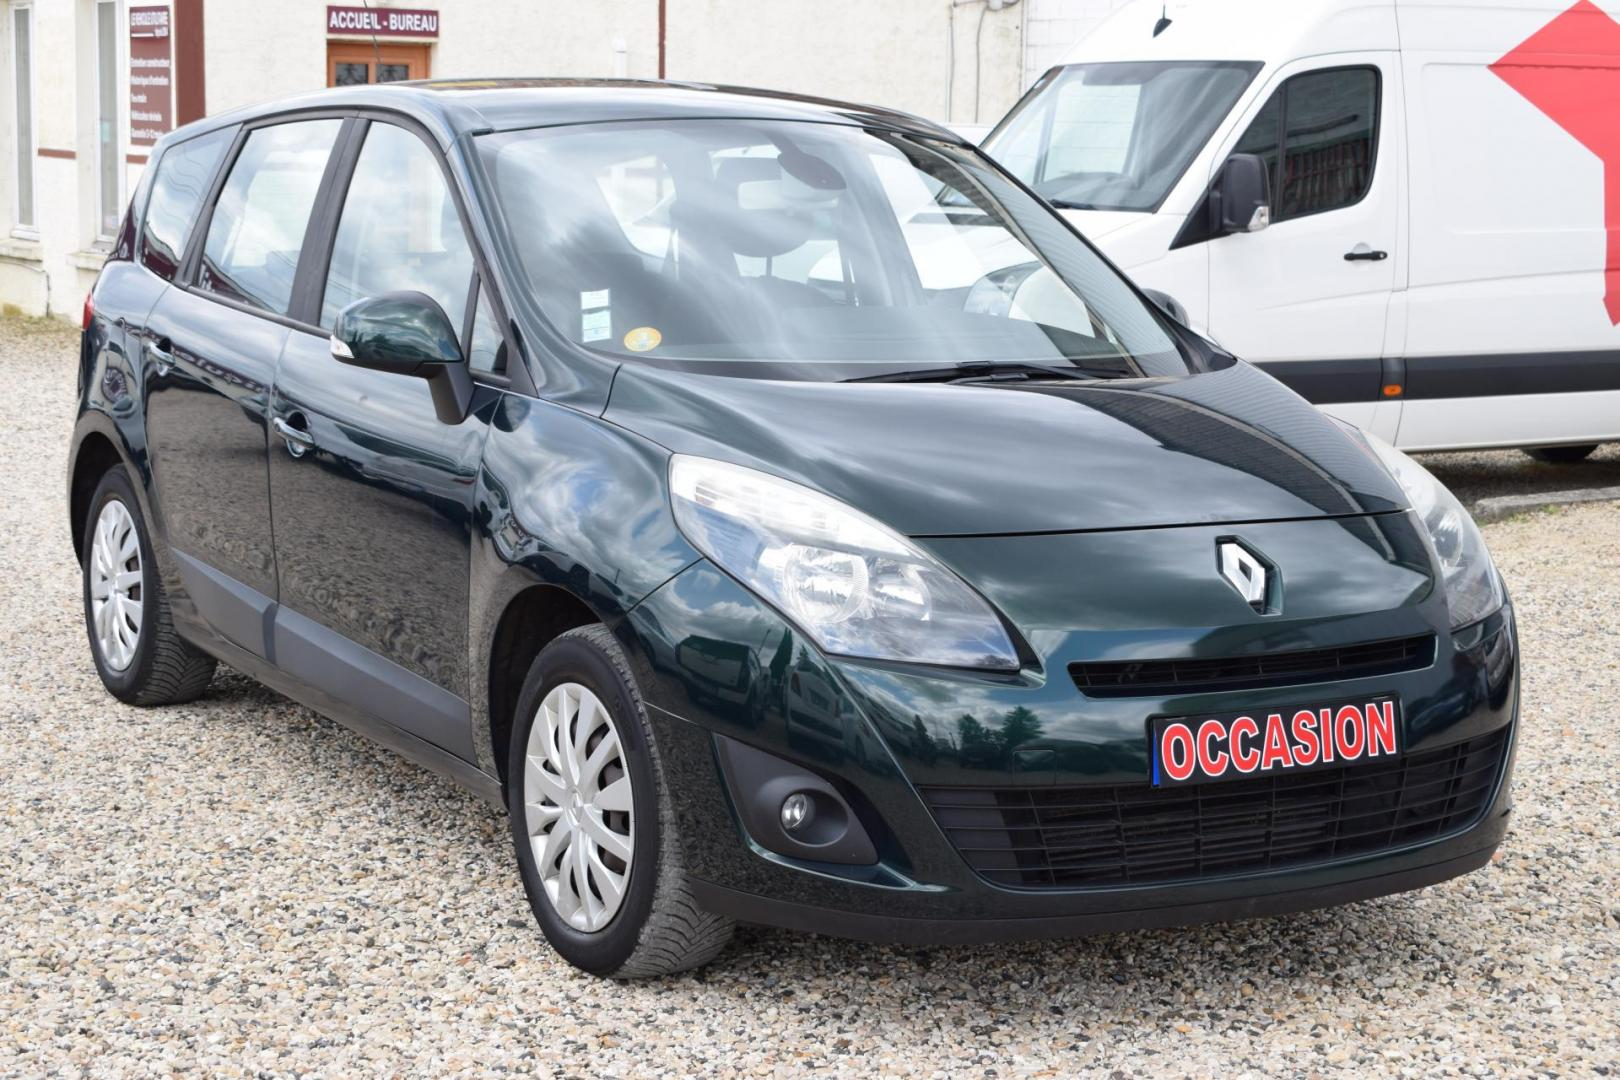 RENAULT GRAND SCENIC 1.9DCI 130 EXPRESSION